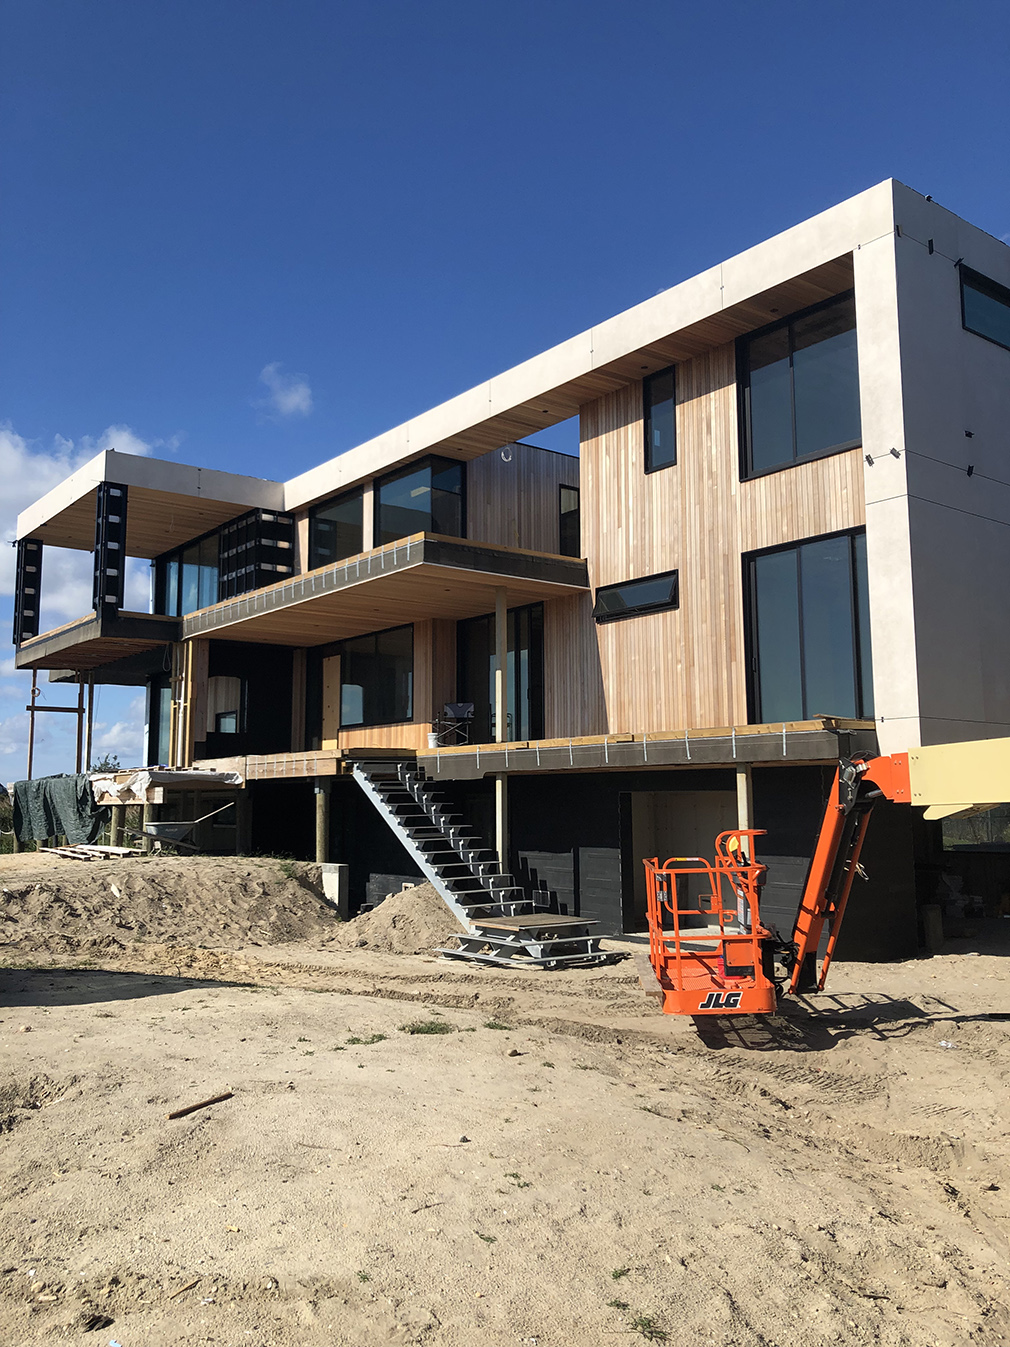 westhampton beach house being built 2019